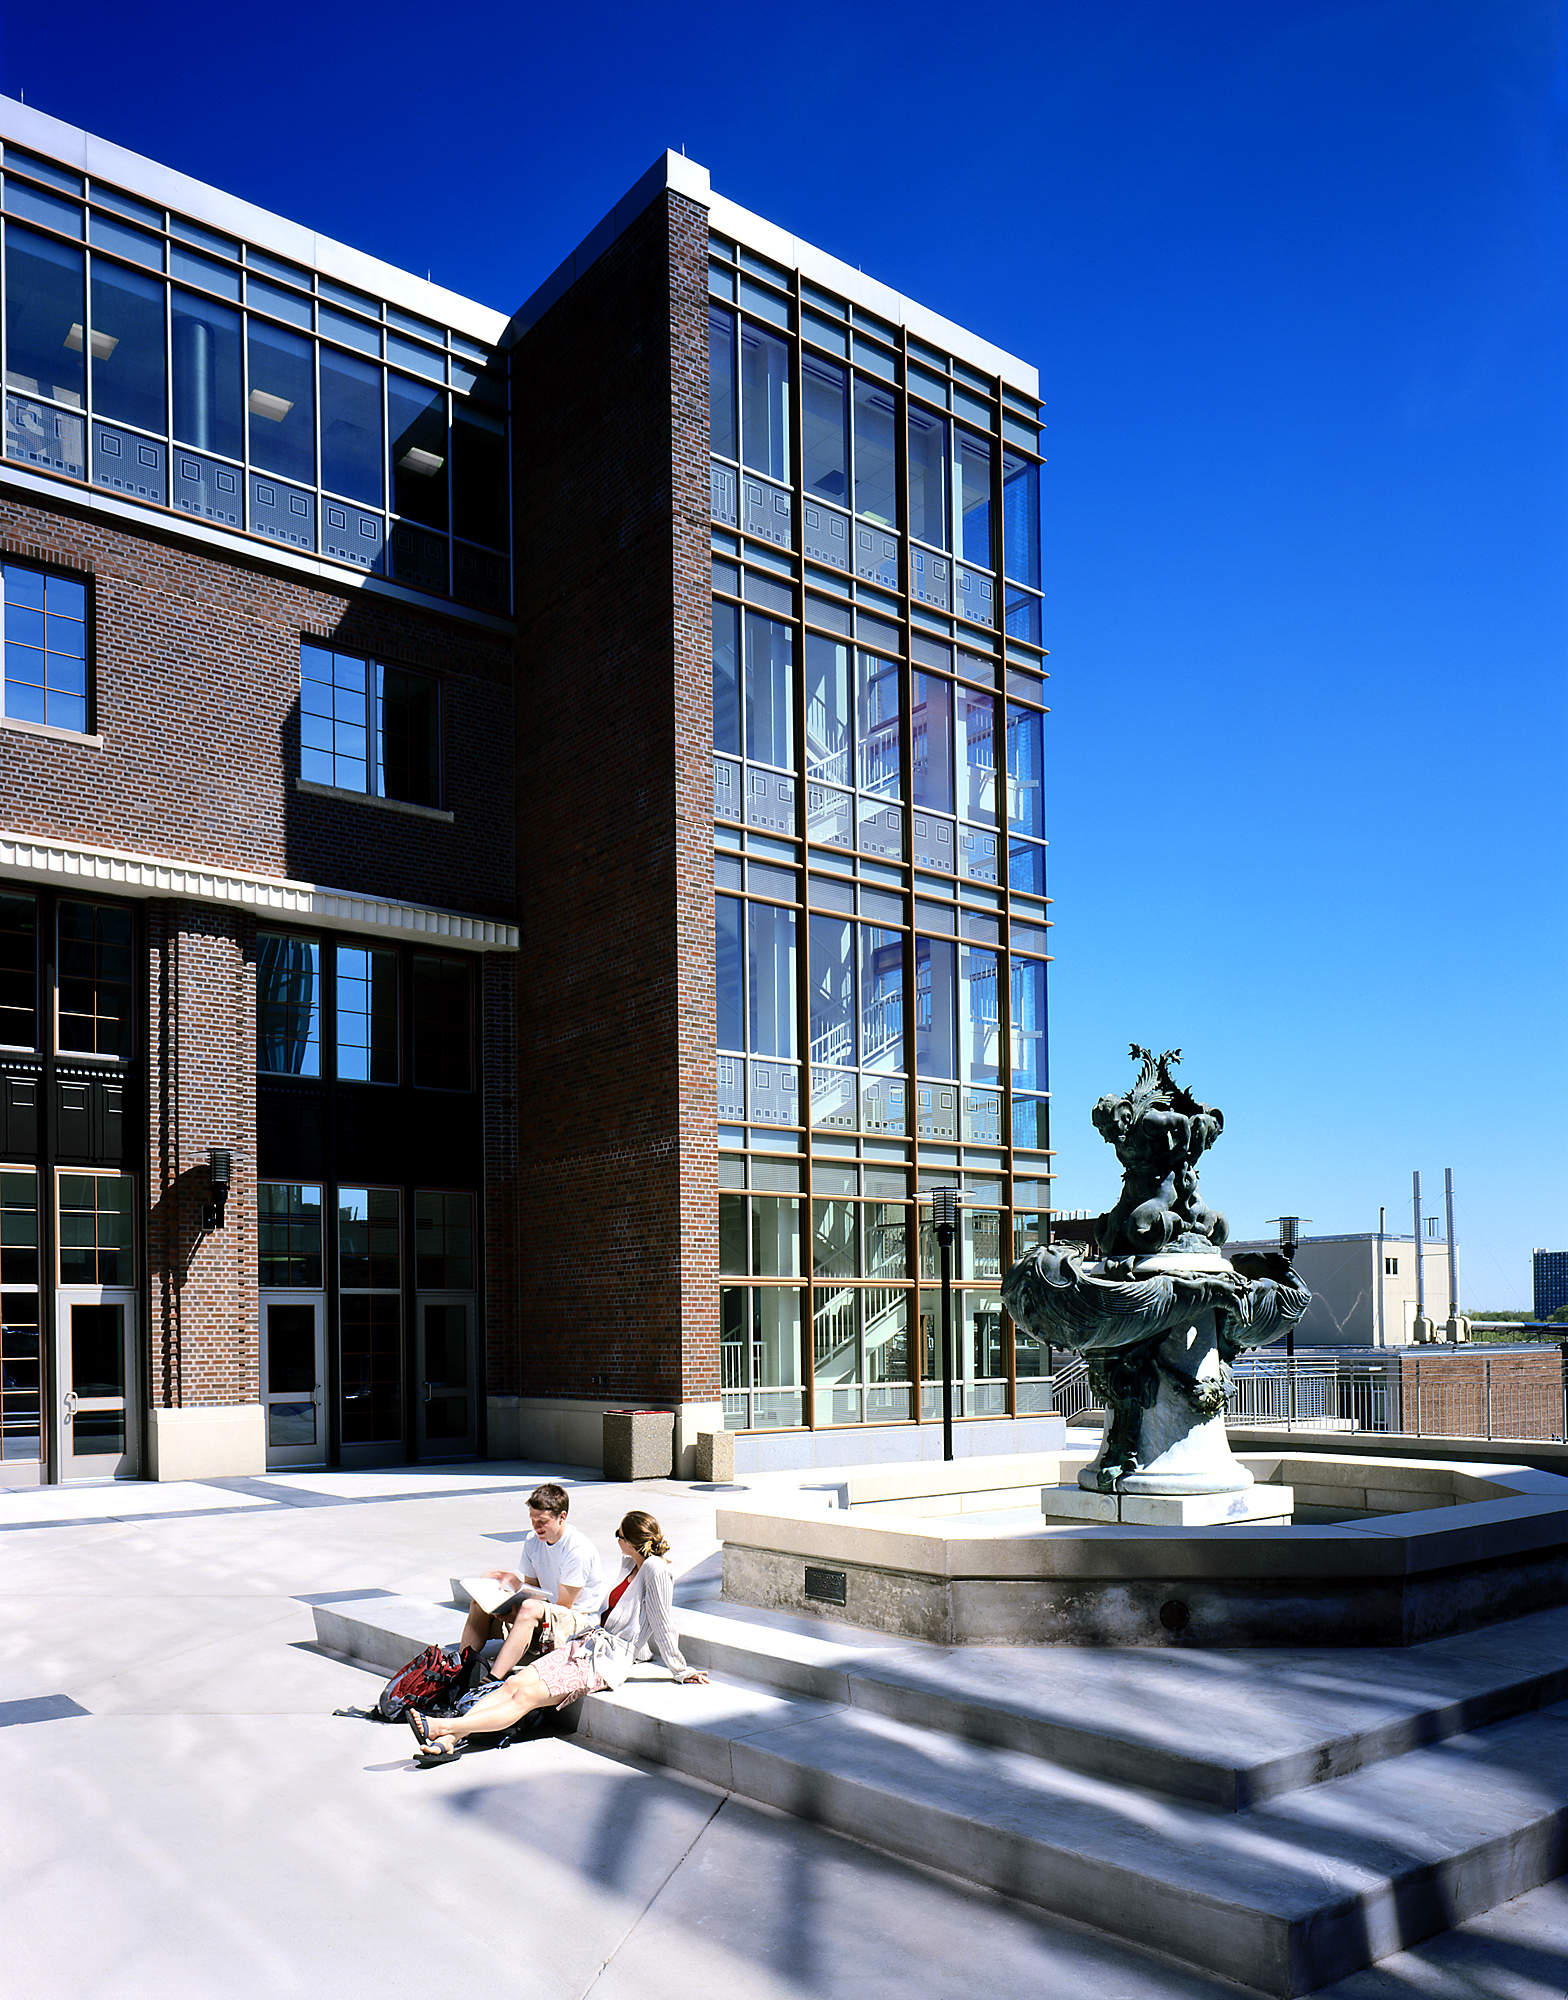 Coffman Memorial Union - University of Minnesota